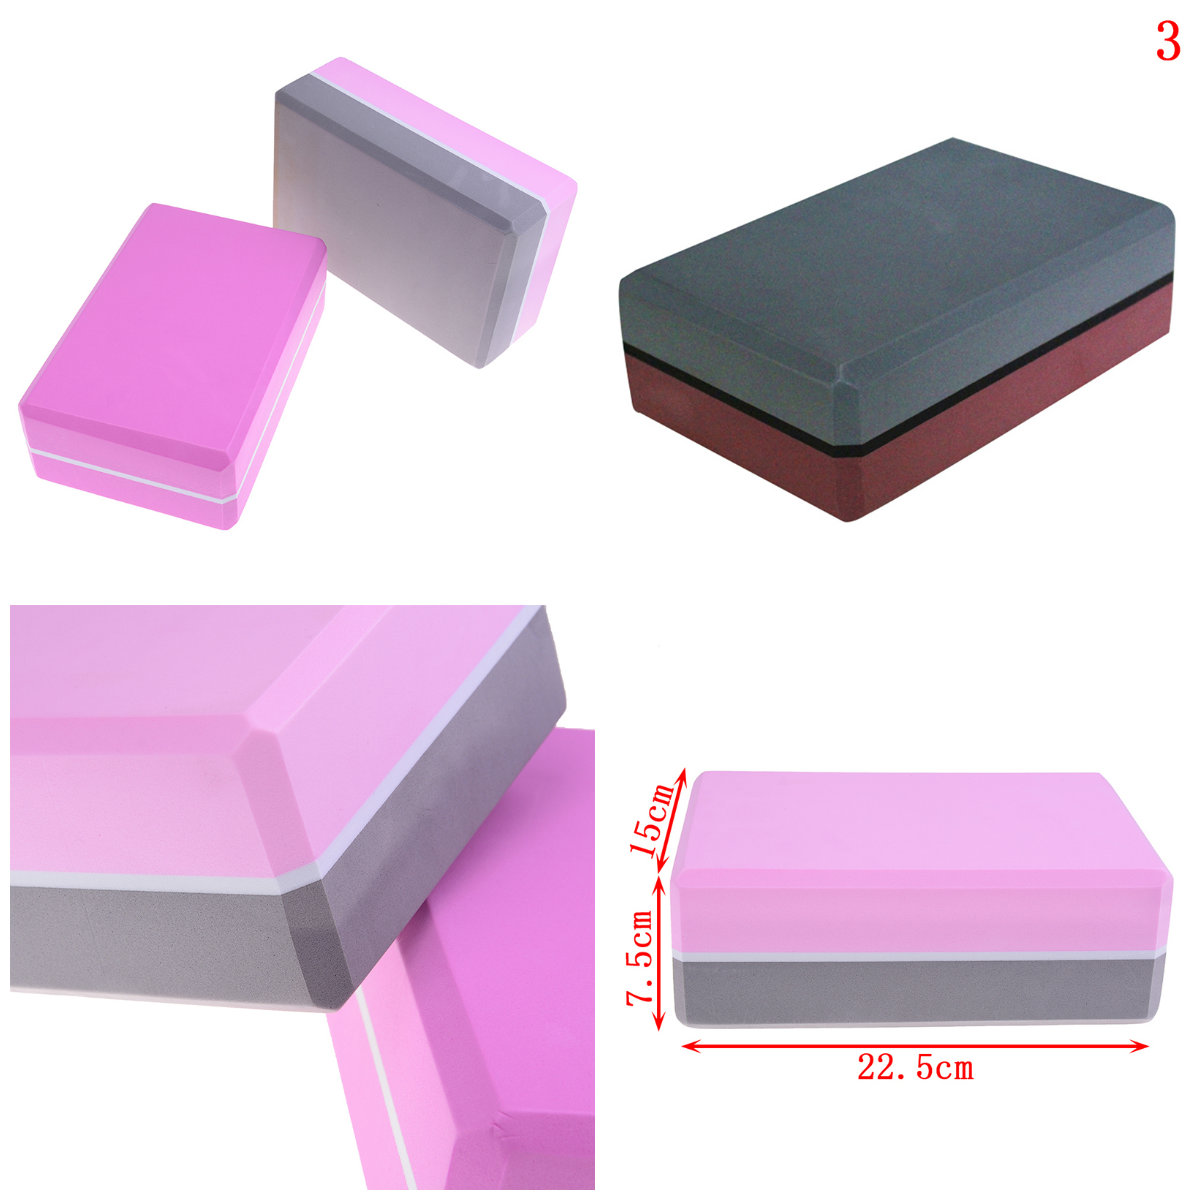 Yoga Block Brick EVA Sports Exercise Gym Foam Workout Stretching Aid Body Shaping Health Training Fitness 6 Color